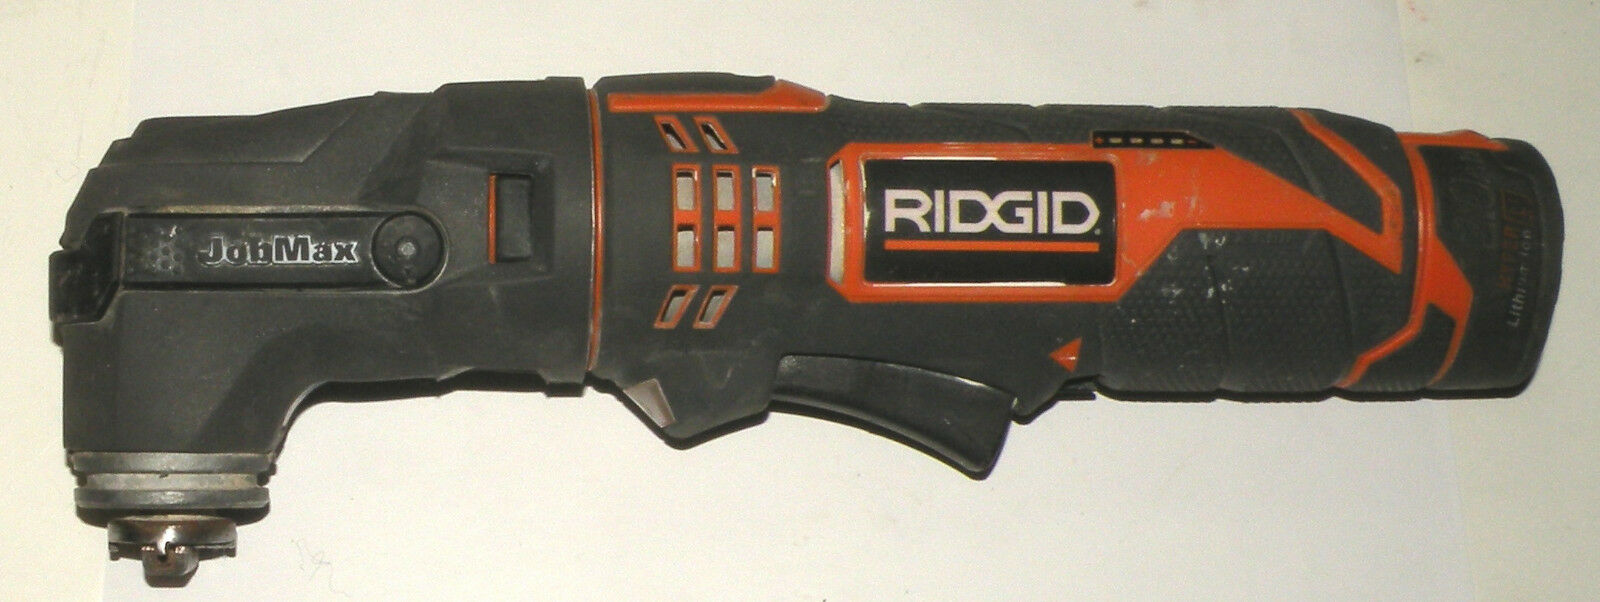 Ridgid R8223500 Series A Multi-Tool w R8223406 Head + Battery, Charger, Case